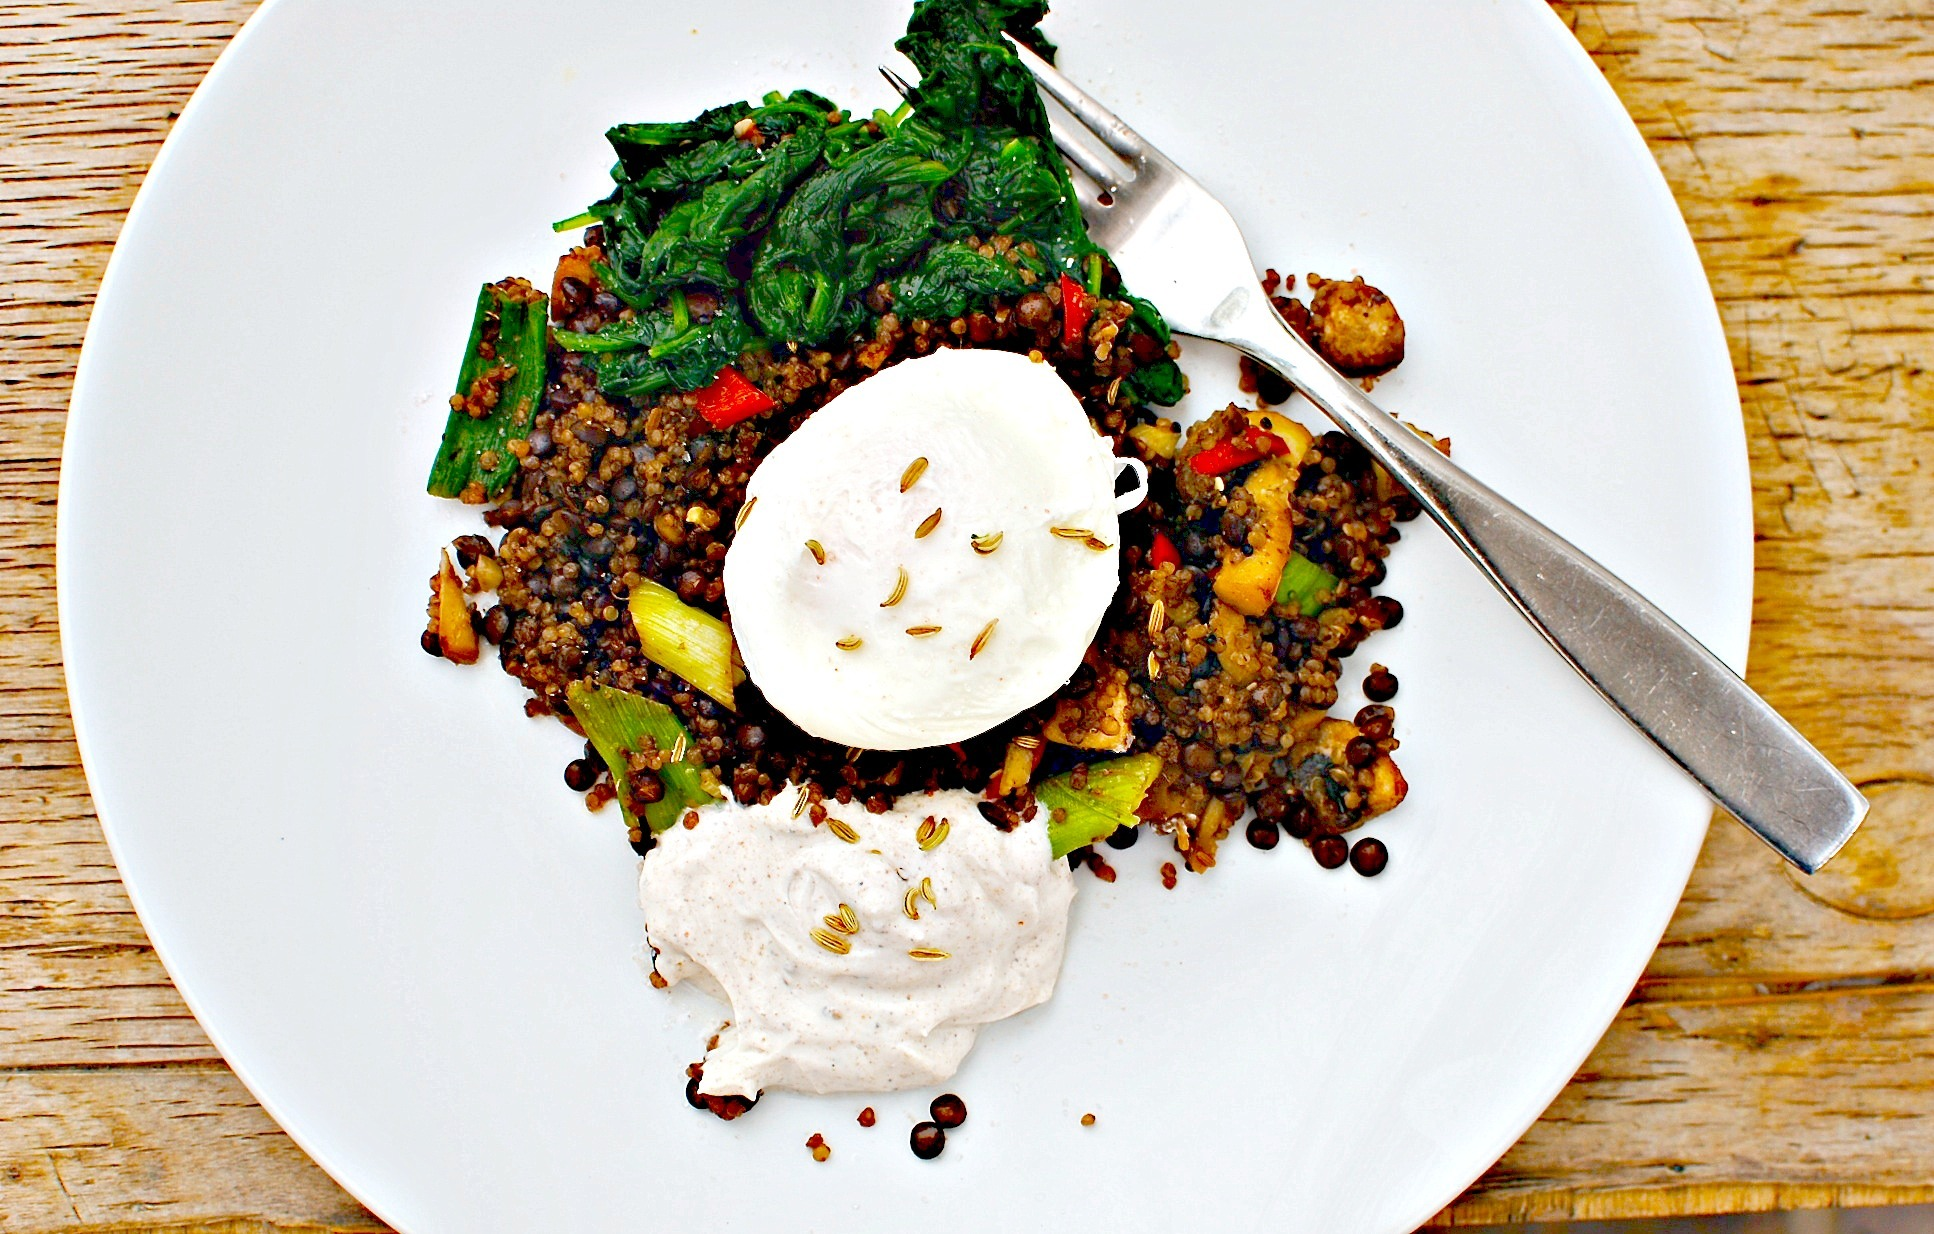 Baharat Quinoa, Lentils and Eggy Breakfast (or Lunch or Supper!)